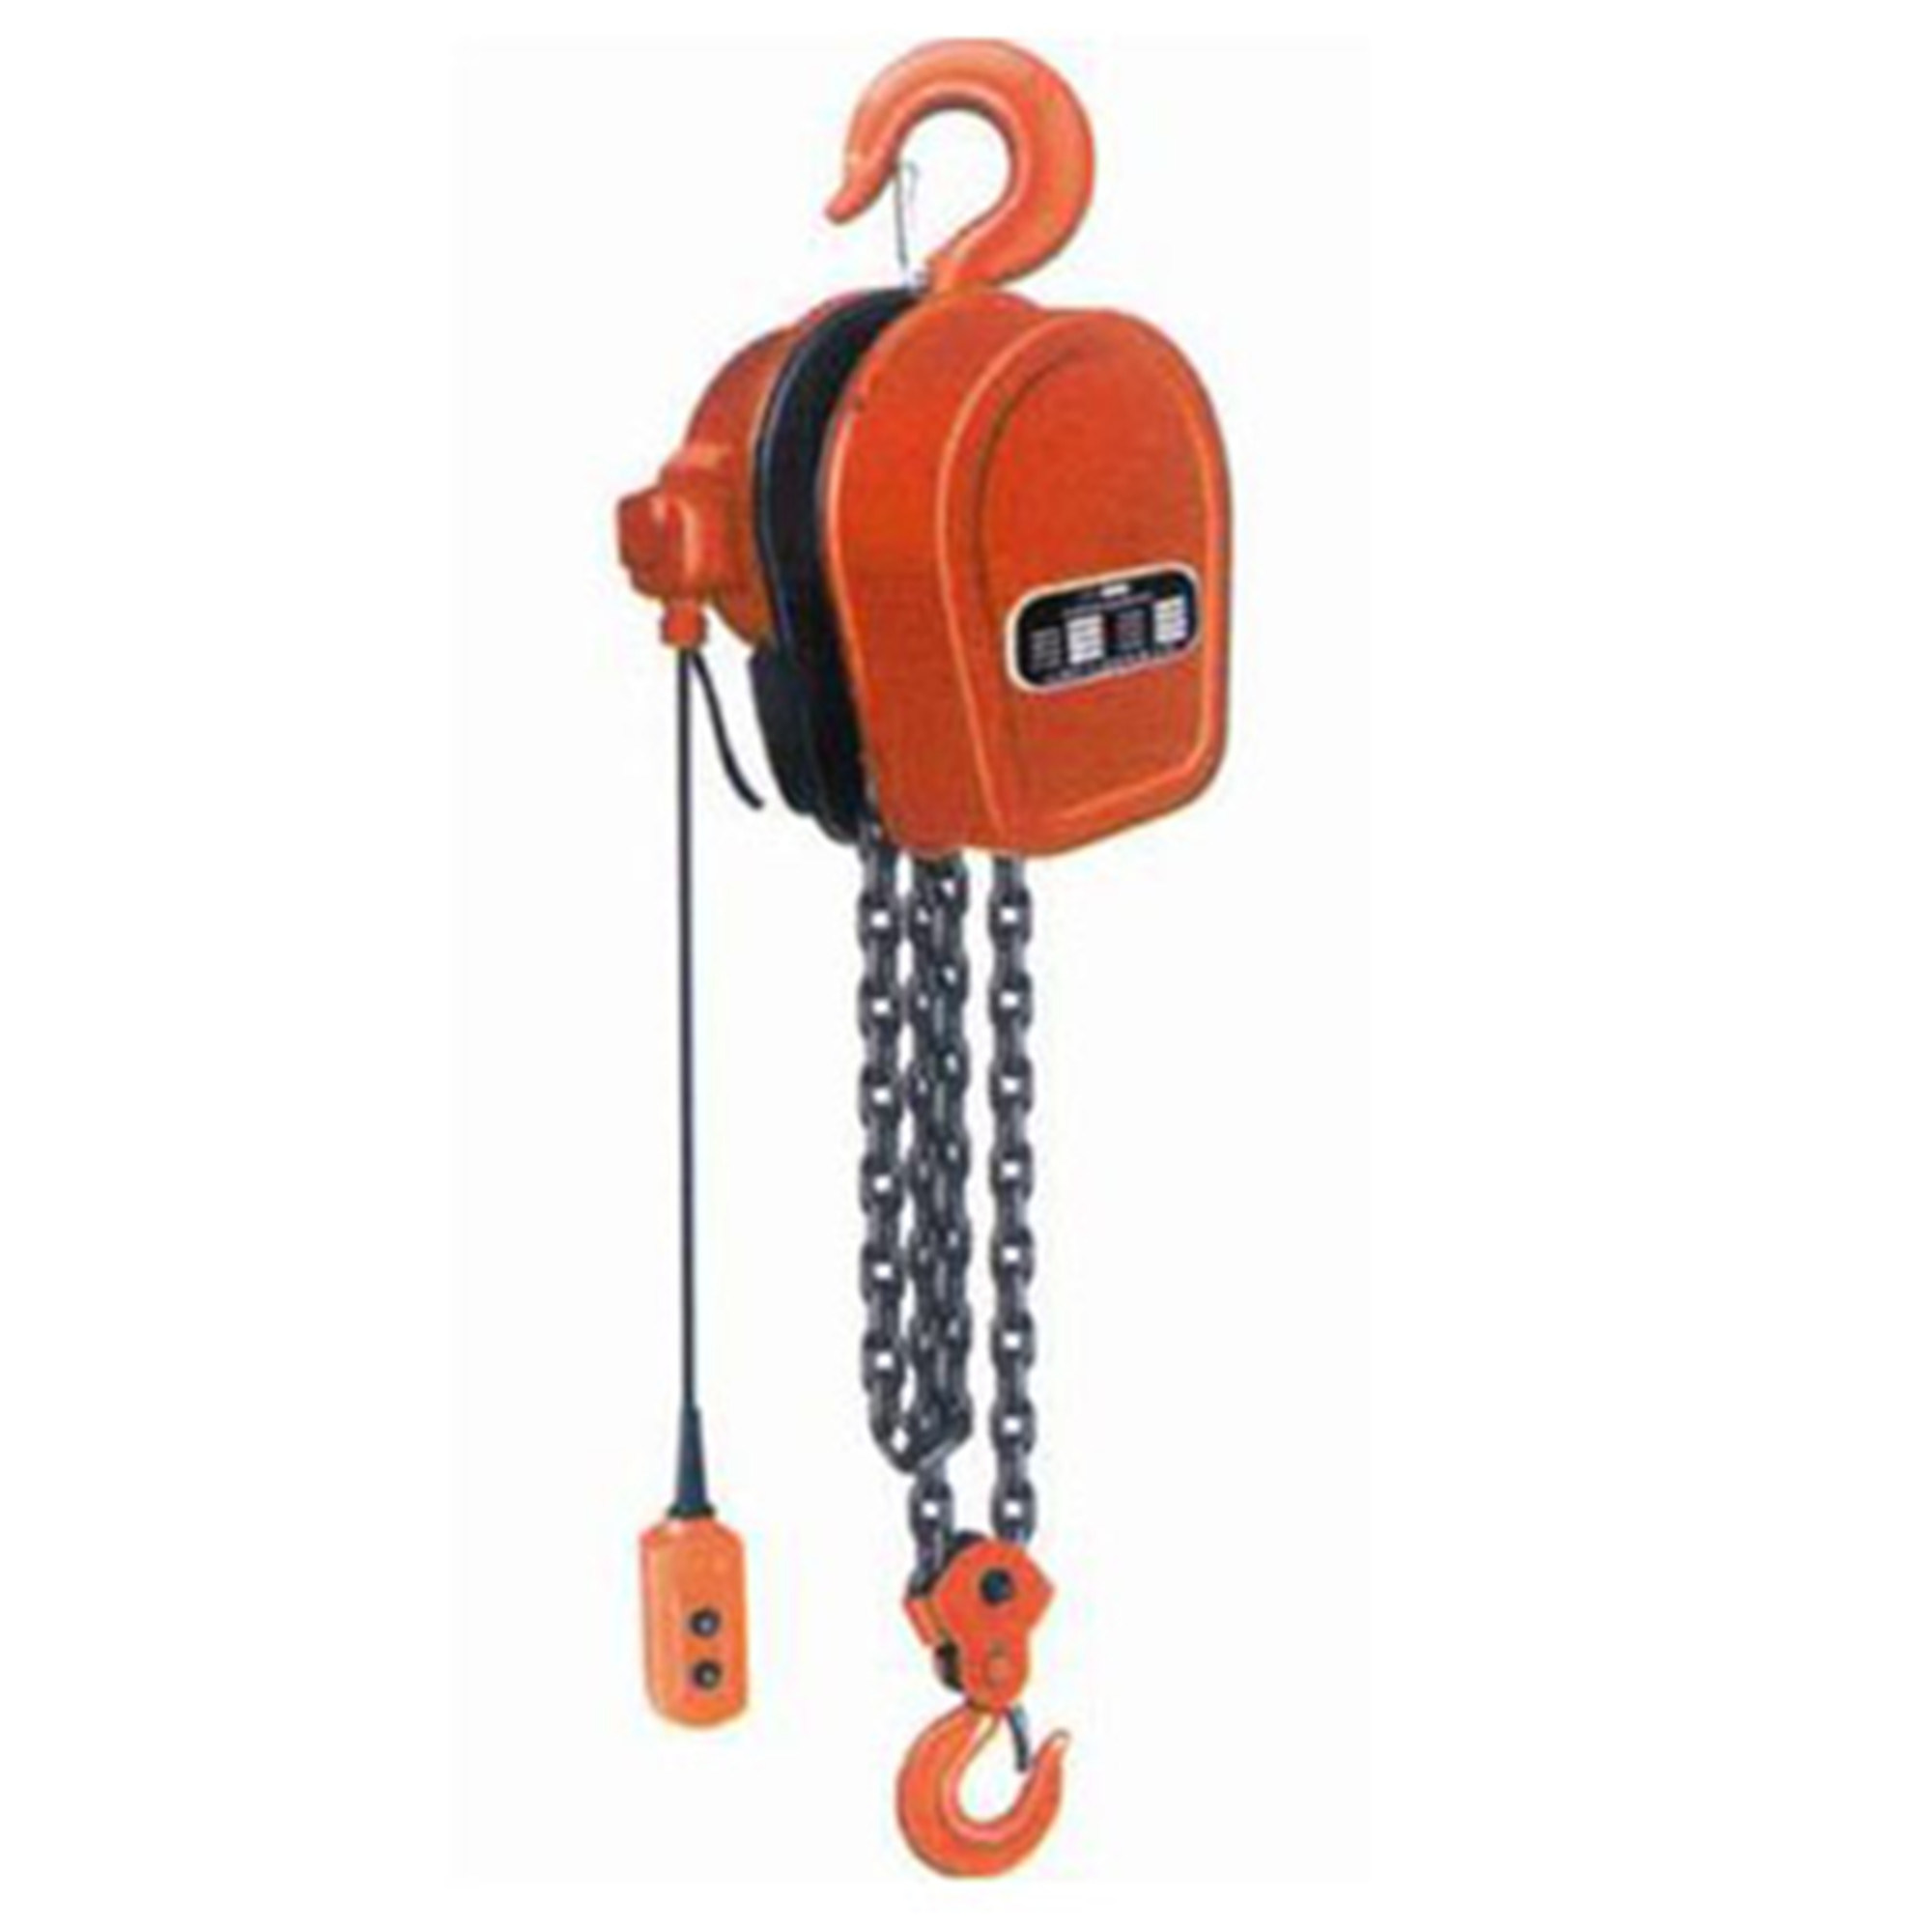 hight resolution of electric pallet truck diagram electric free engine image yale electric hoist wiring diagram yale chain hoist wiring diagram